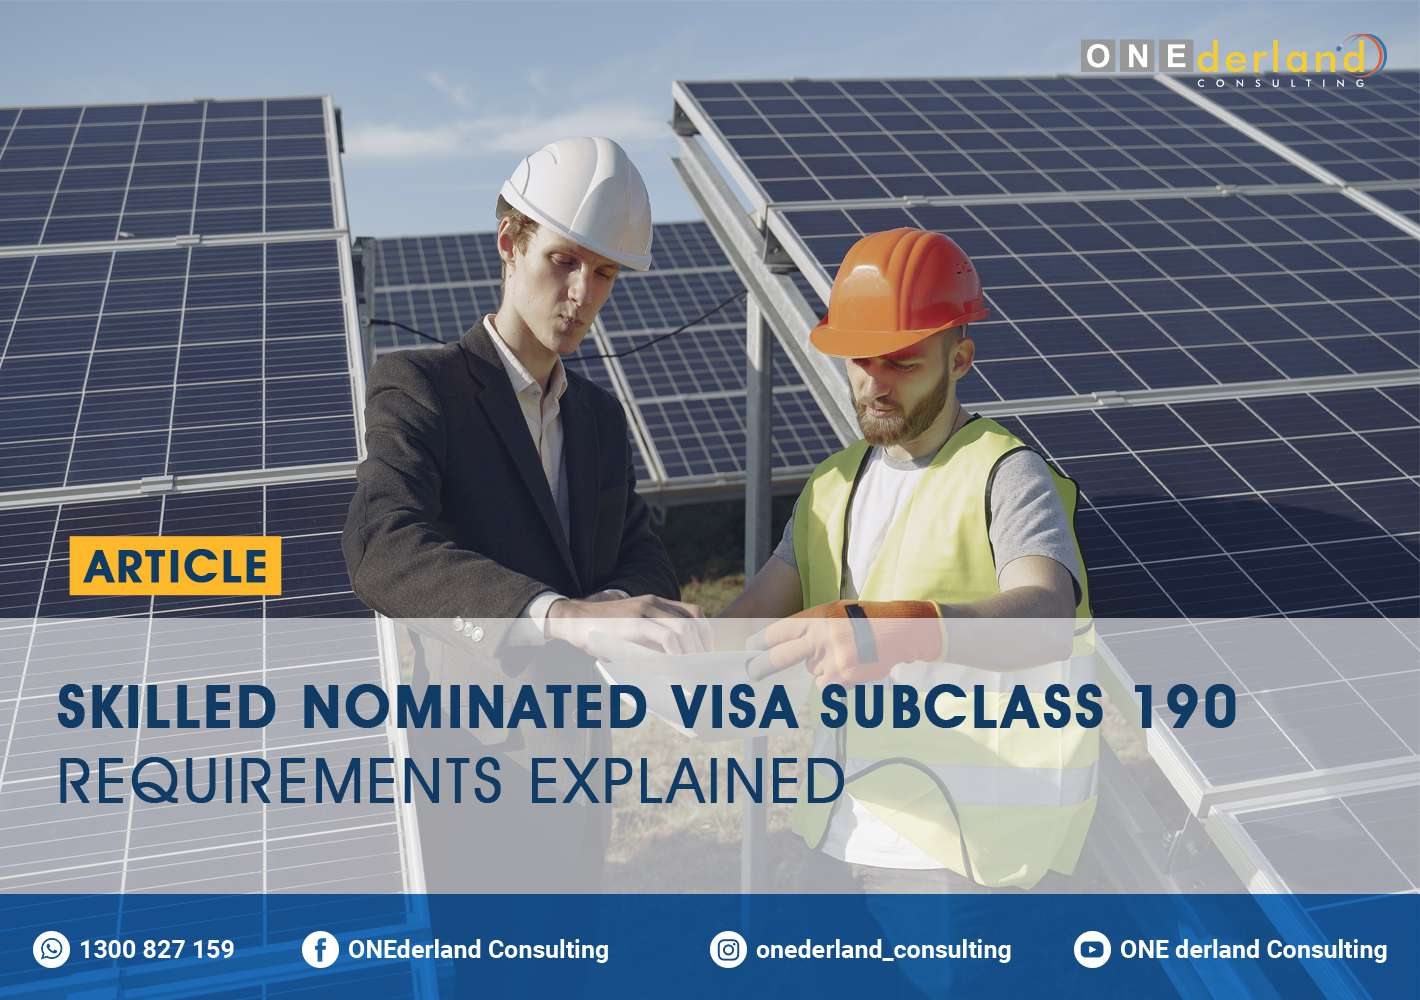 Skilled Nominated Visa Subclass 190 Requirements Explained